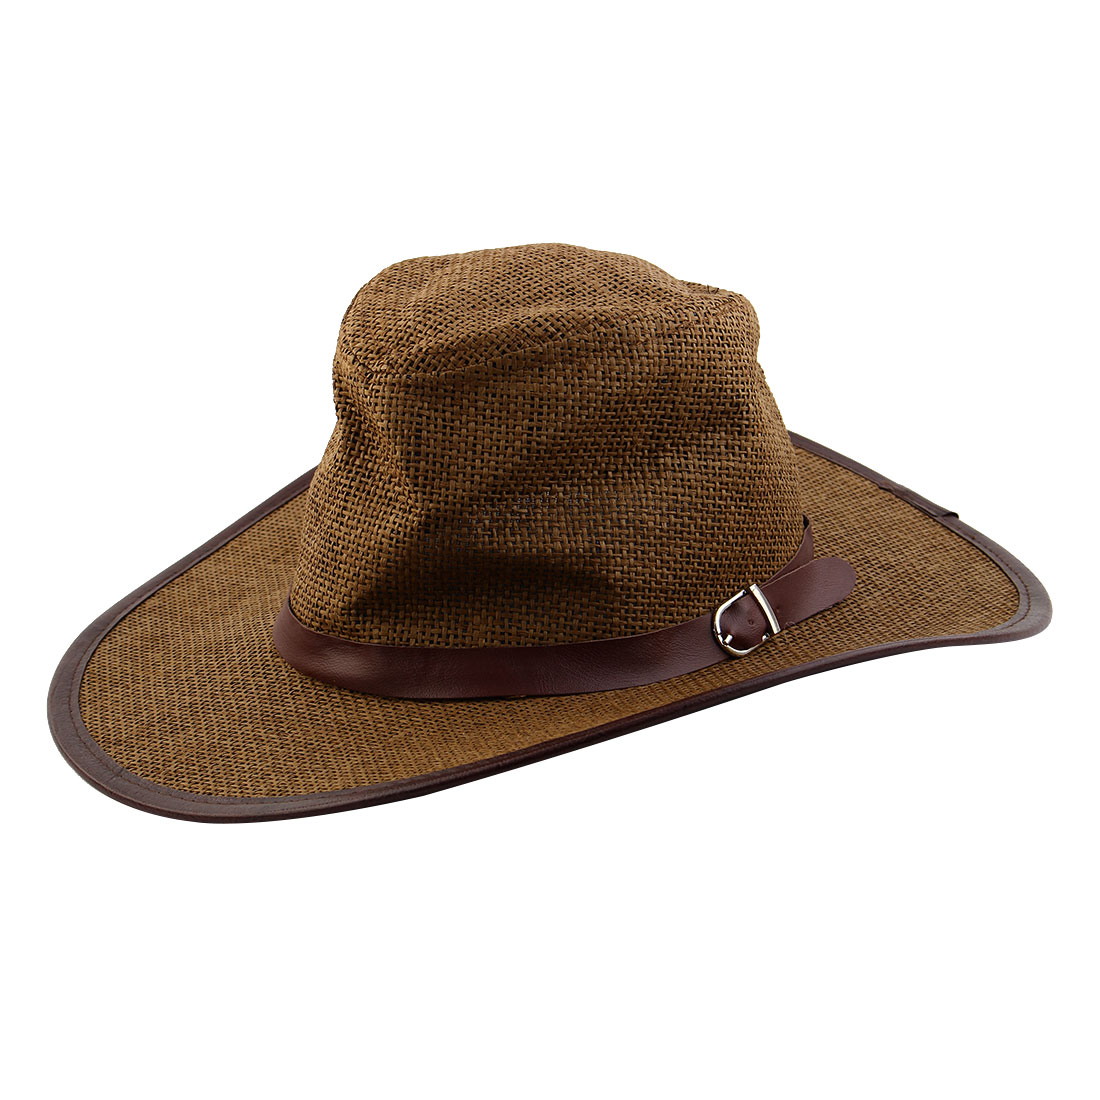 Summer Straw Braided Faux Leather Band Decor Sunhat Cowboy Hat Coffee Color